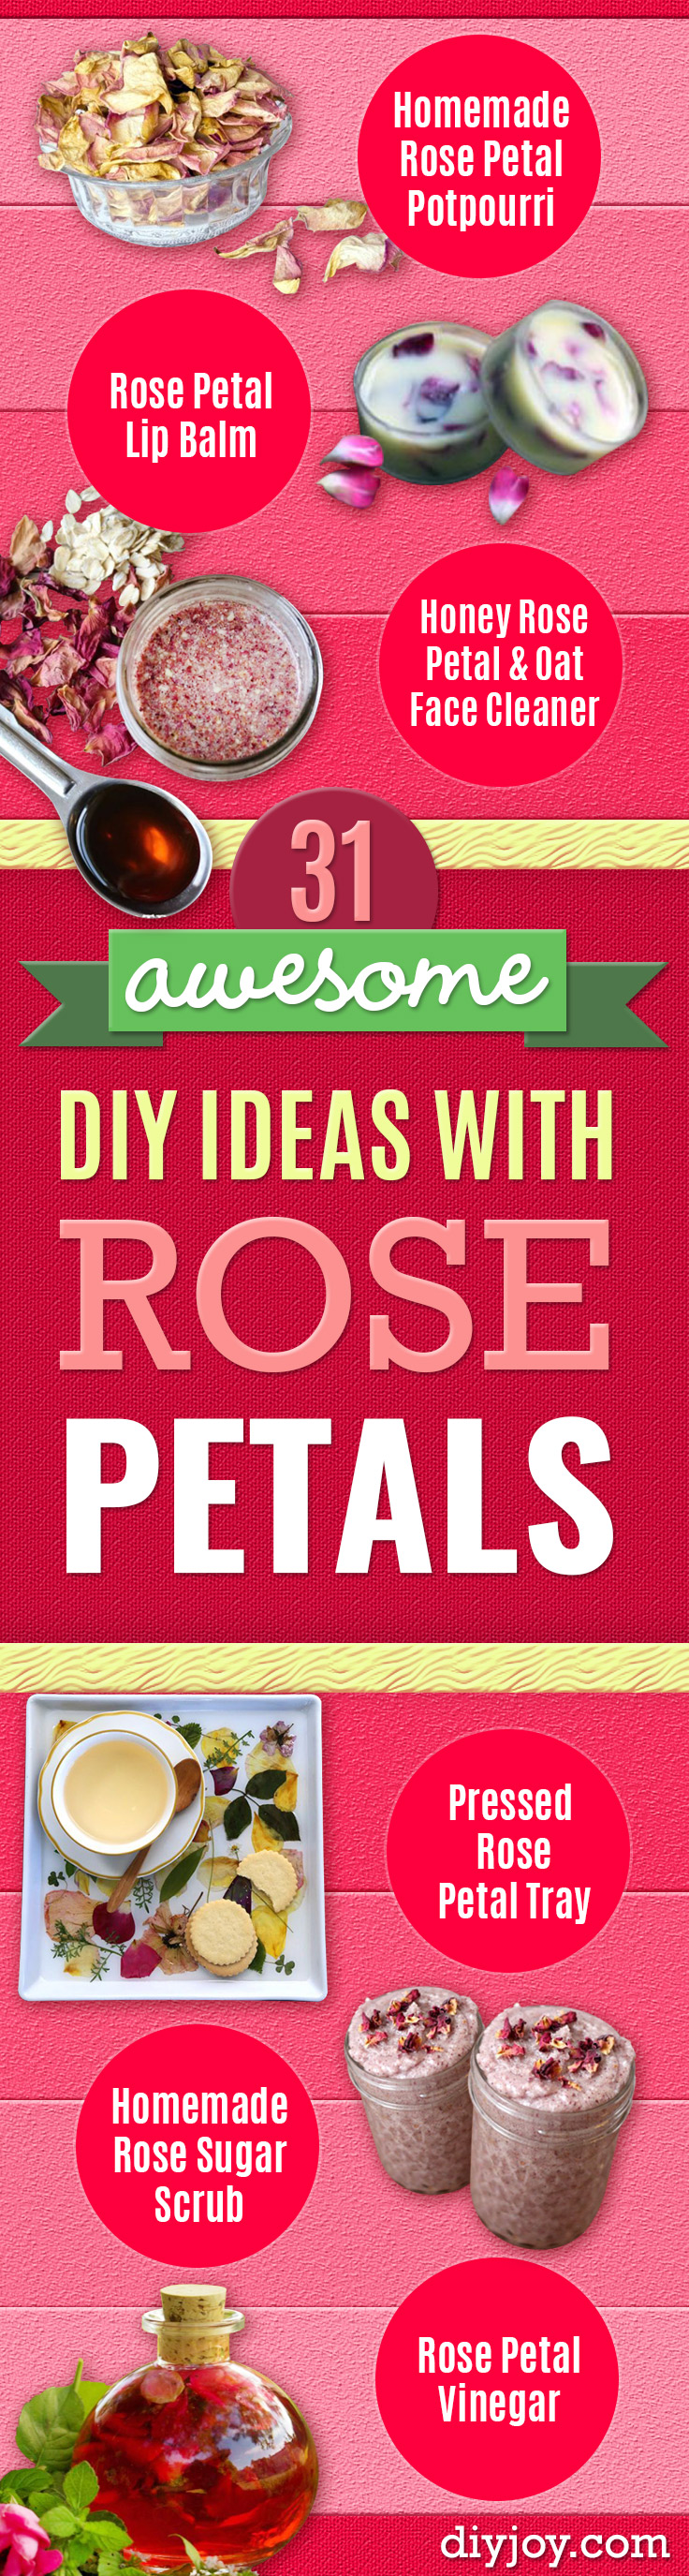 DIY Ideas With Rose Petals - Crafts and DIY Projects, Recipes You Can Make With Rose Petals - Easy Home Decor and Gift Ideas Make Creative Mothers Day and Christmas Gifts - Crafts and Do It Yourself by DIY JOY